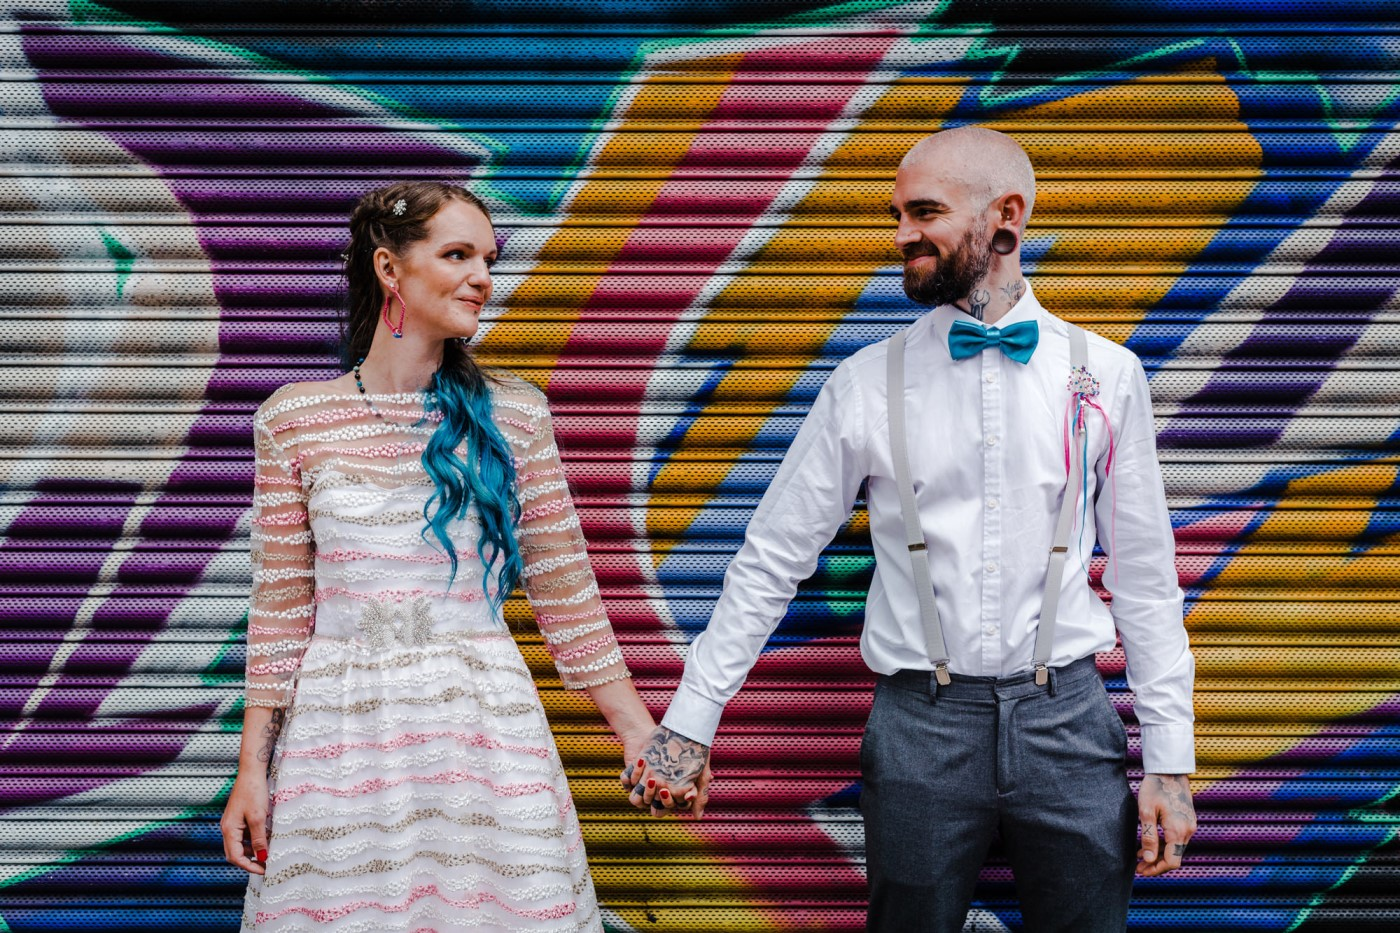 Last Minute Wedding- Kirsty Rocket Photography- Urban Wedding- Wedding Ideas- Wedding Planning- Alternative Wedding- Unconventional Wedding- Creative Wedding- Unique Wedding Dress- Alternative Couple- Nottingham Wedding